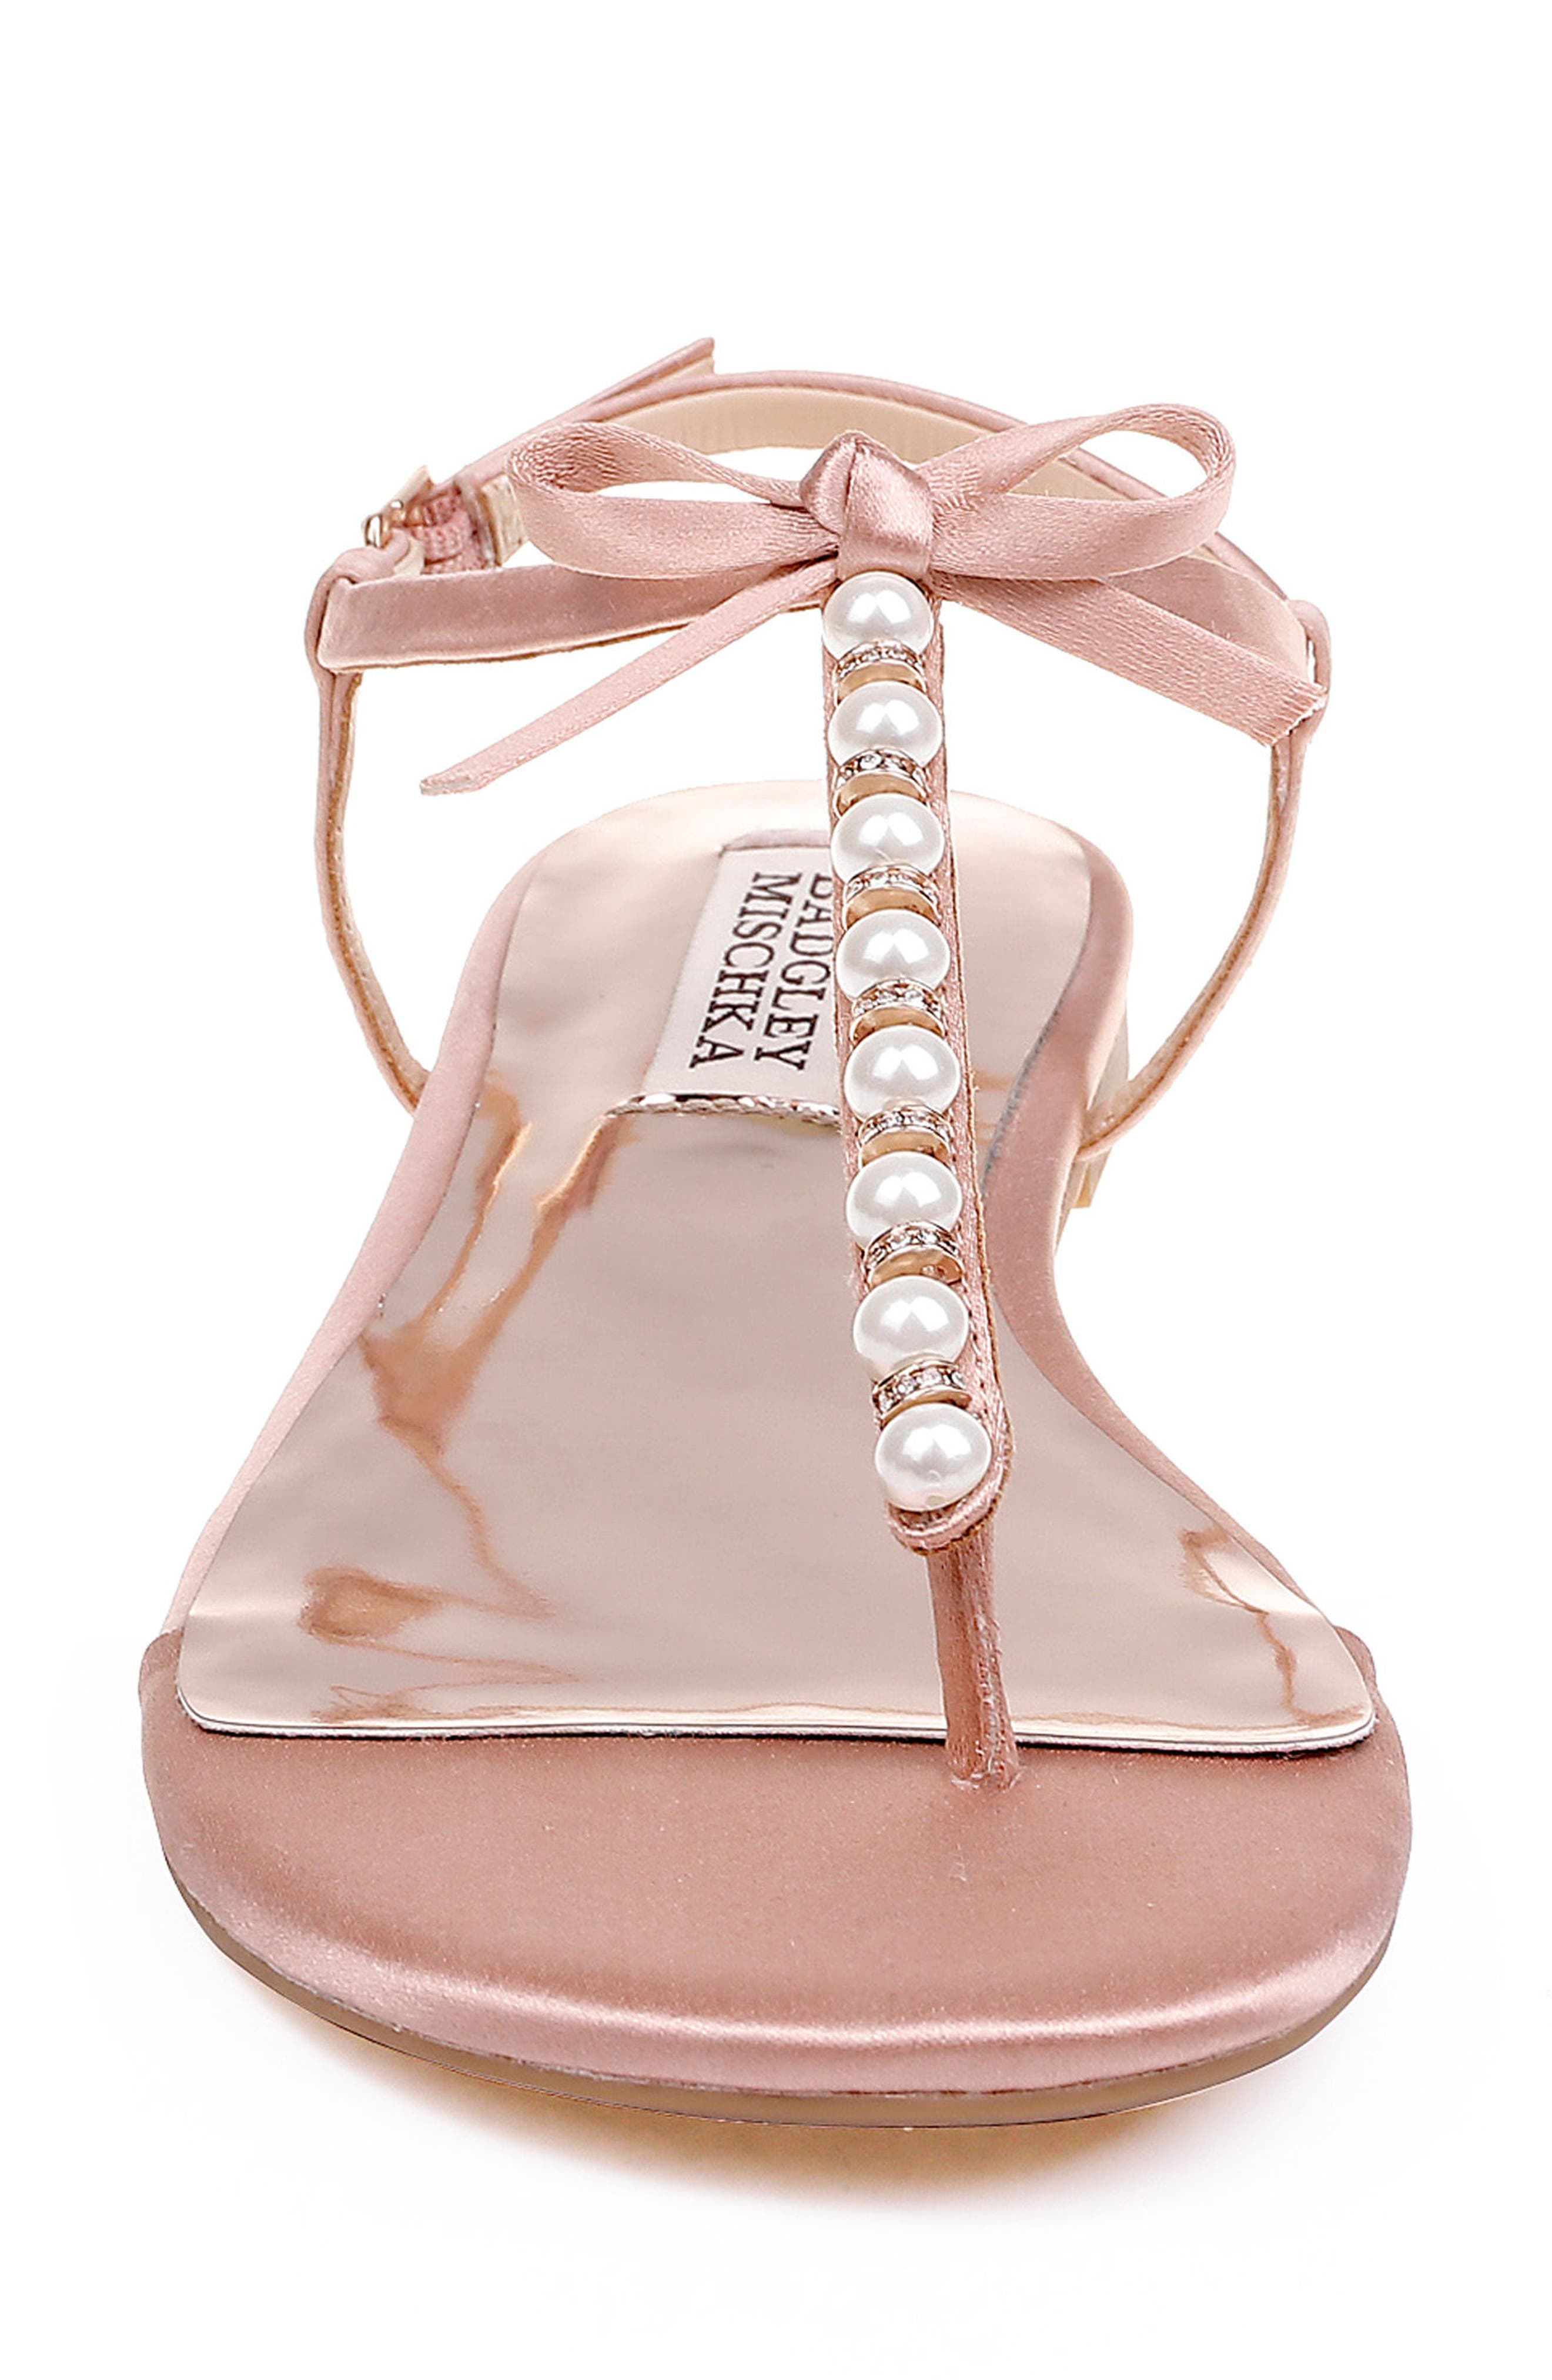 Honey Embellished Sandal,                             Alternate thumbnail 4, color,                             Dark Pink Satin